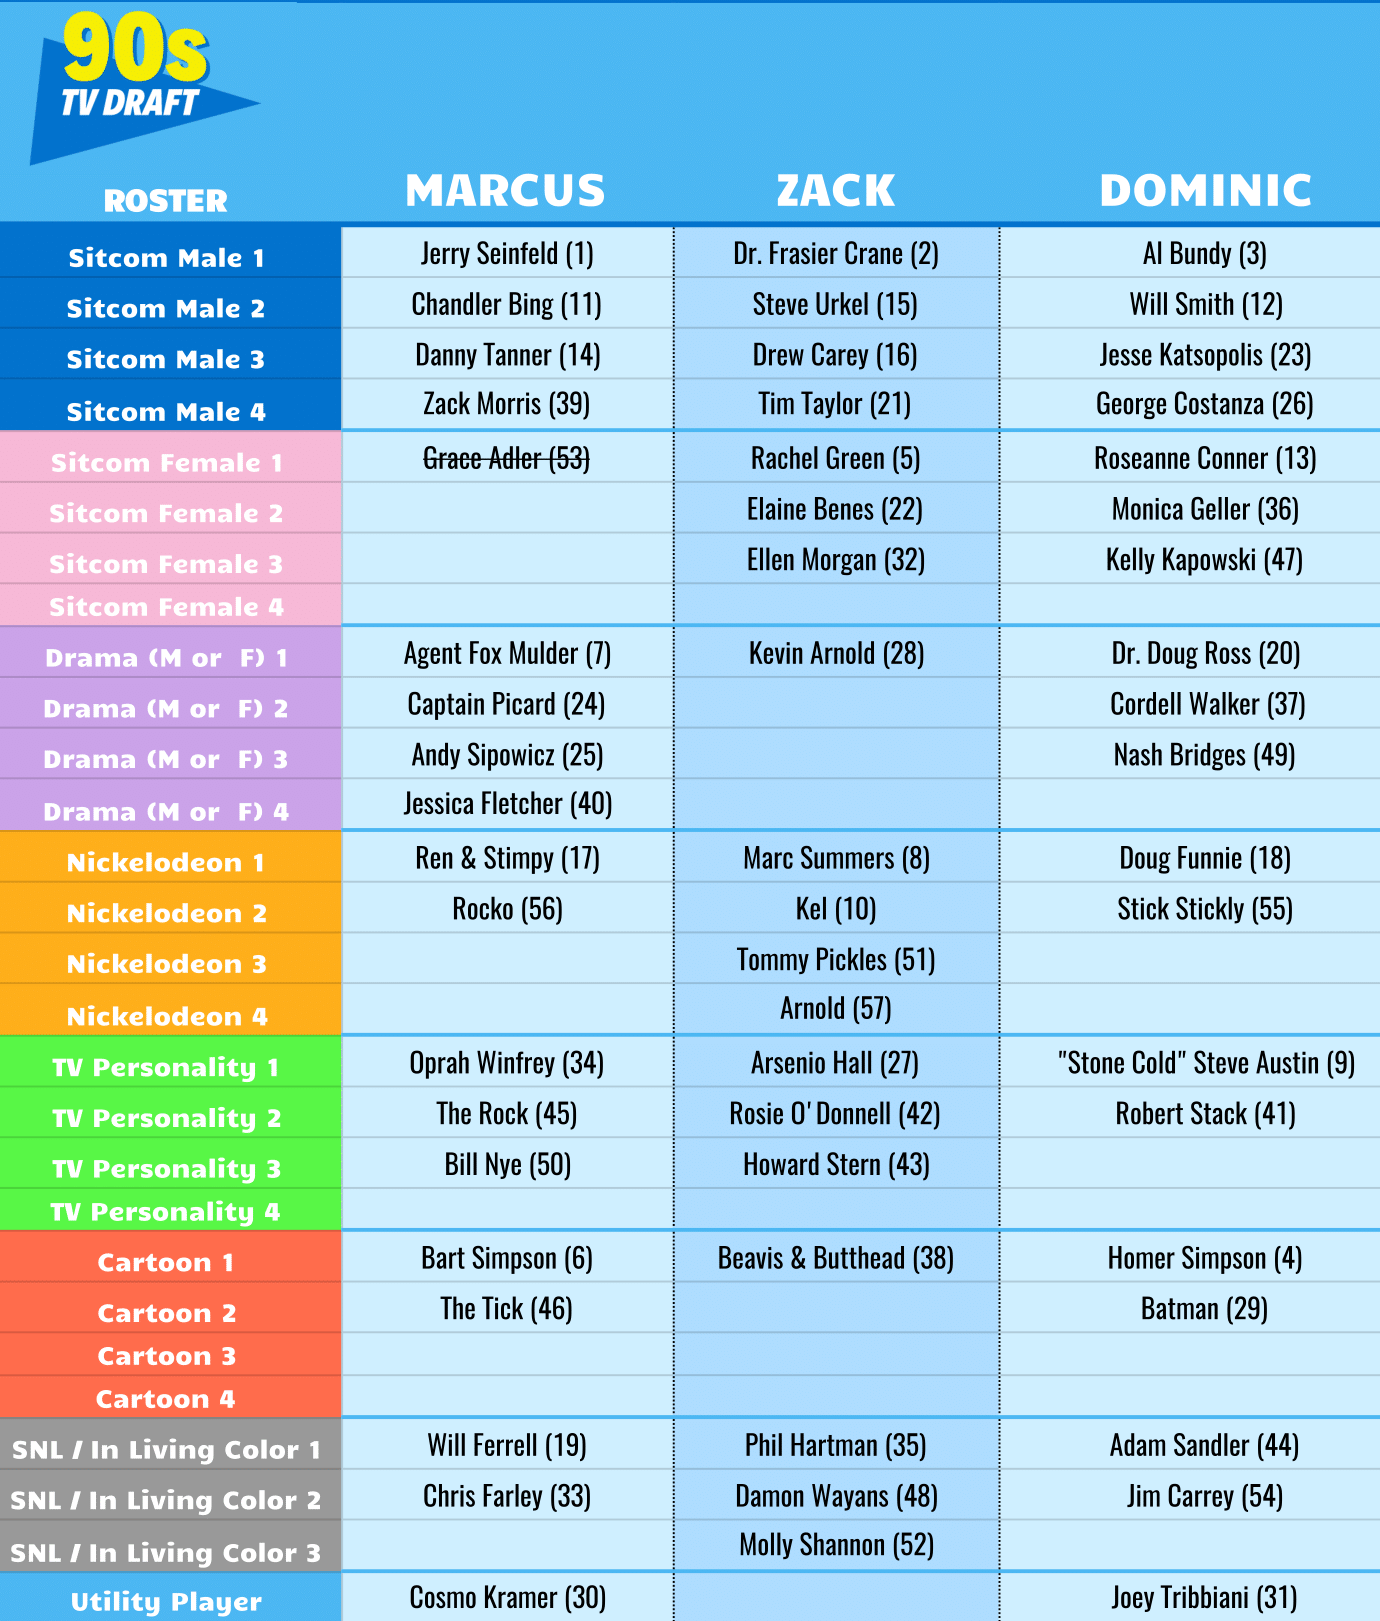 1990s TV Draft Rosters - Sheet1 (3)-1.png